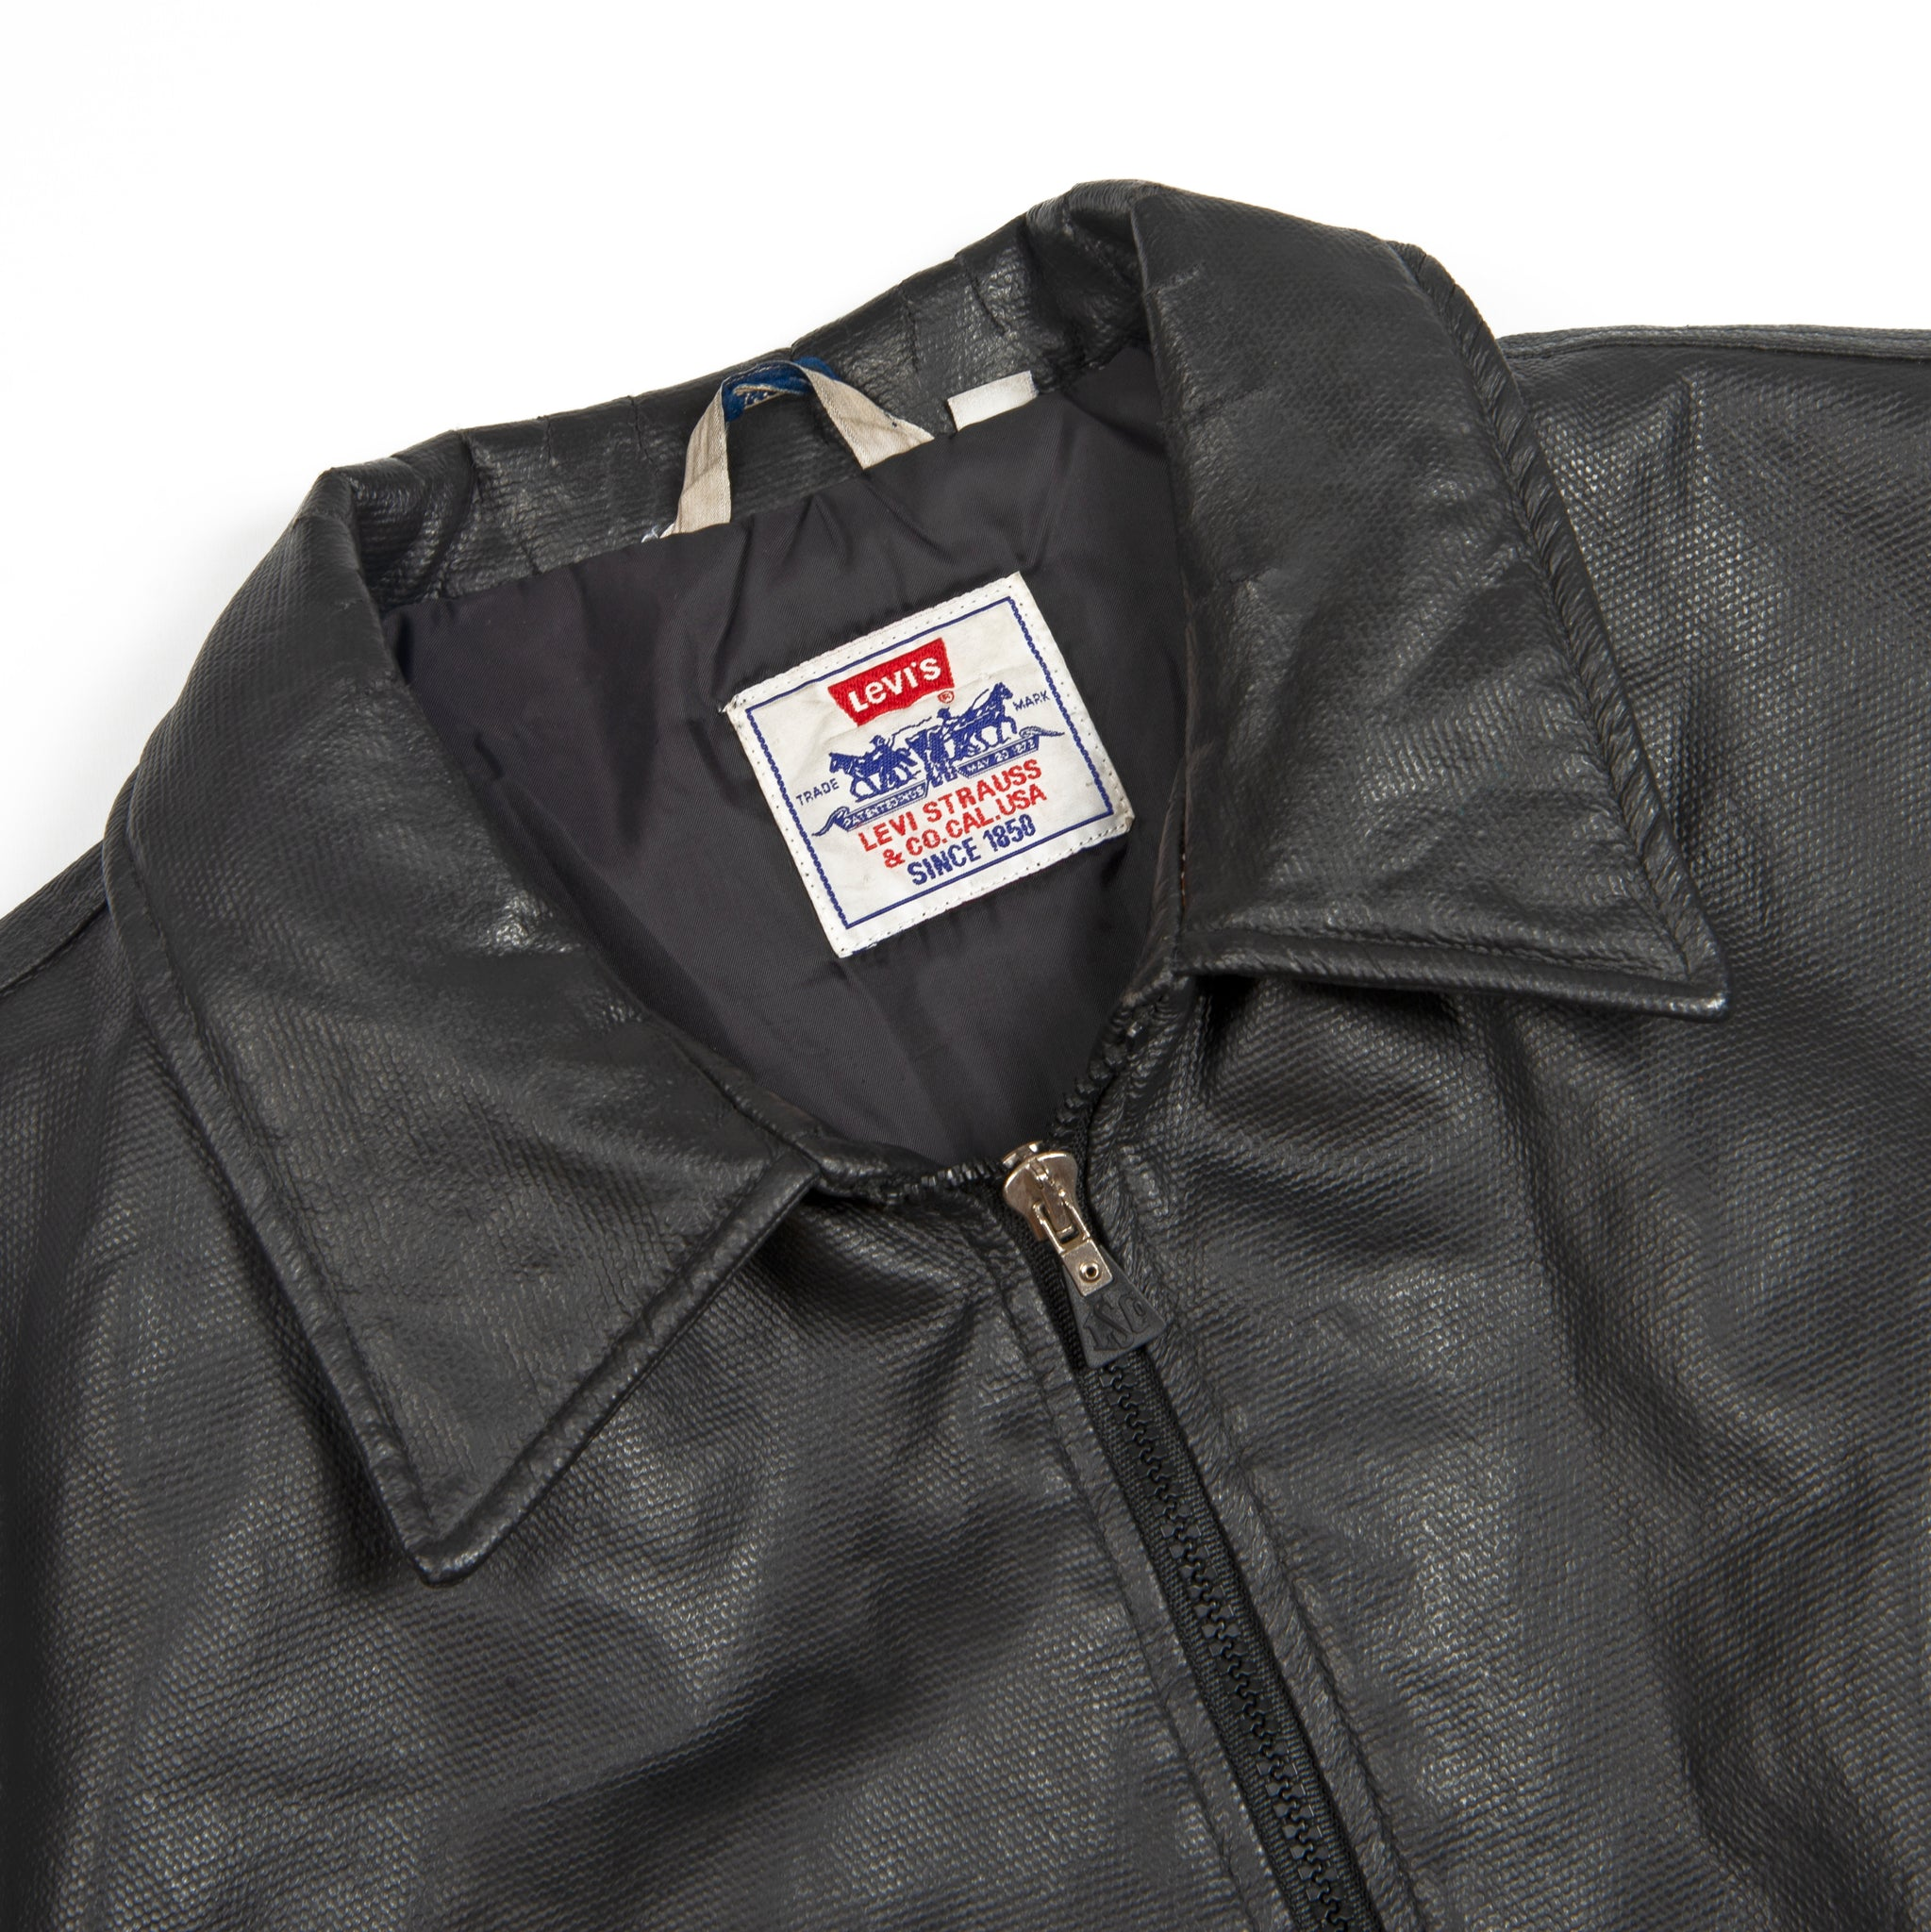 Levi's Jacket Black - Amsterdam Vintage Clothing